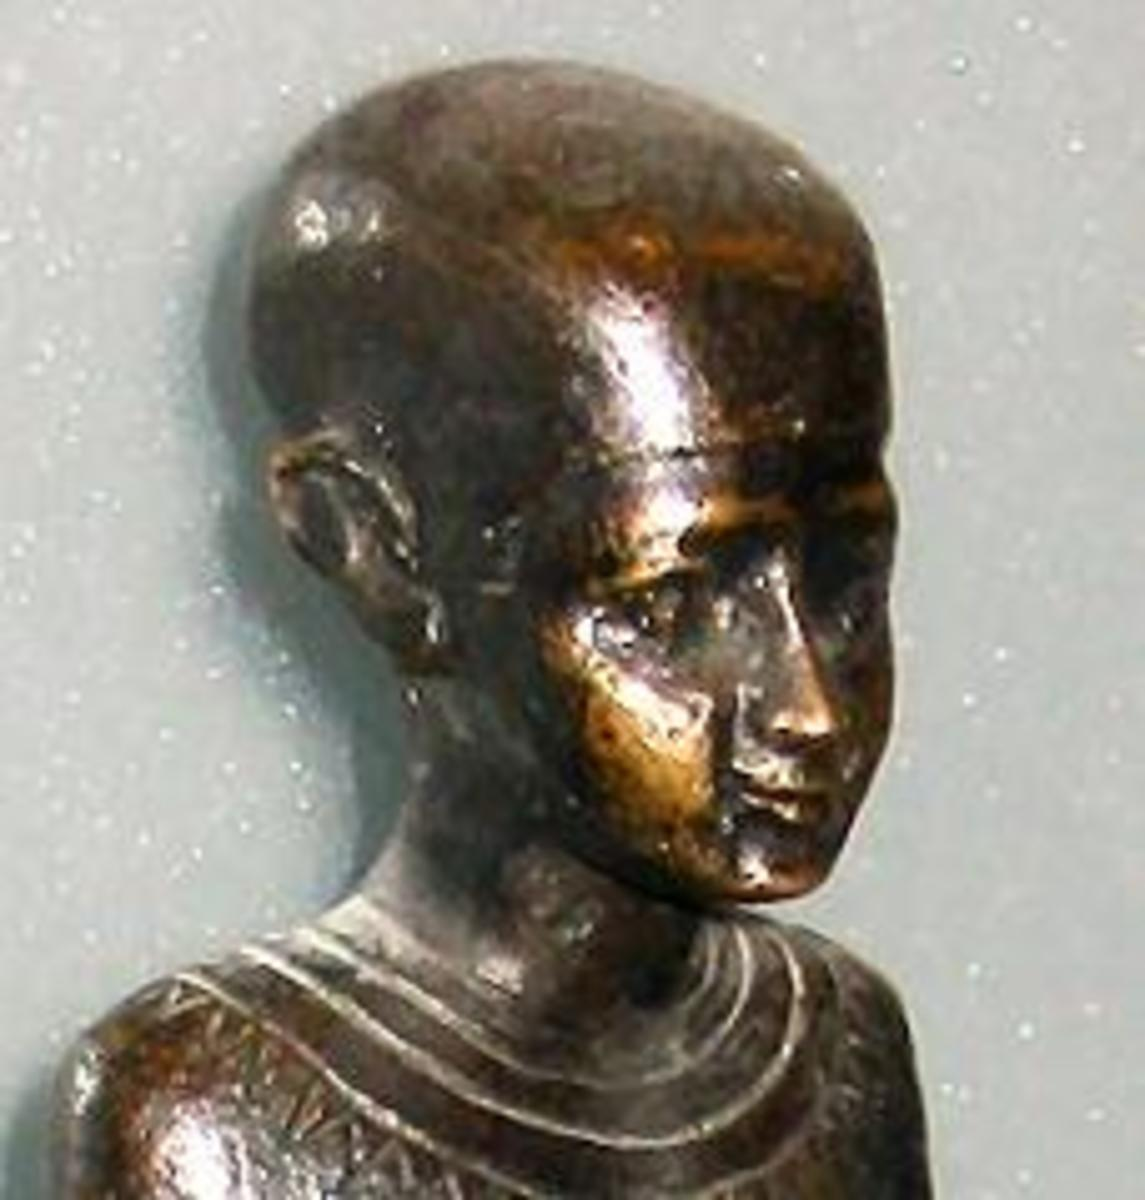 Imhotep _multi genius- (Lived in 27th century BCE) Egyptian architect, chief magician at the Pharaoh's court, vizier, sage and astrologer. About 100 years after his death, he was elevated to a medical demigod. About 2000 years later, he was elevated